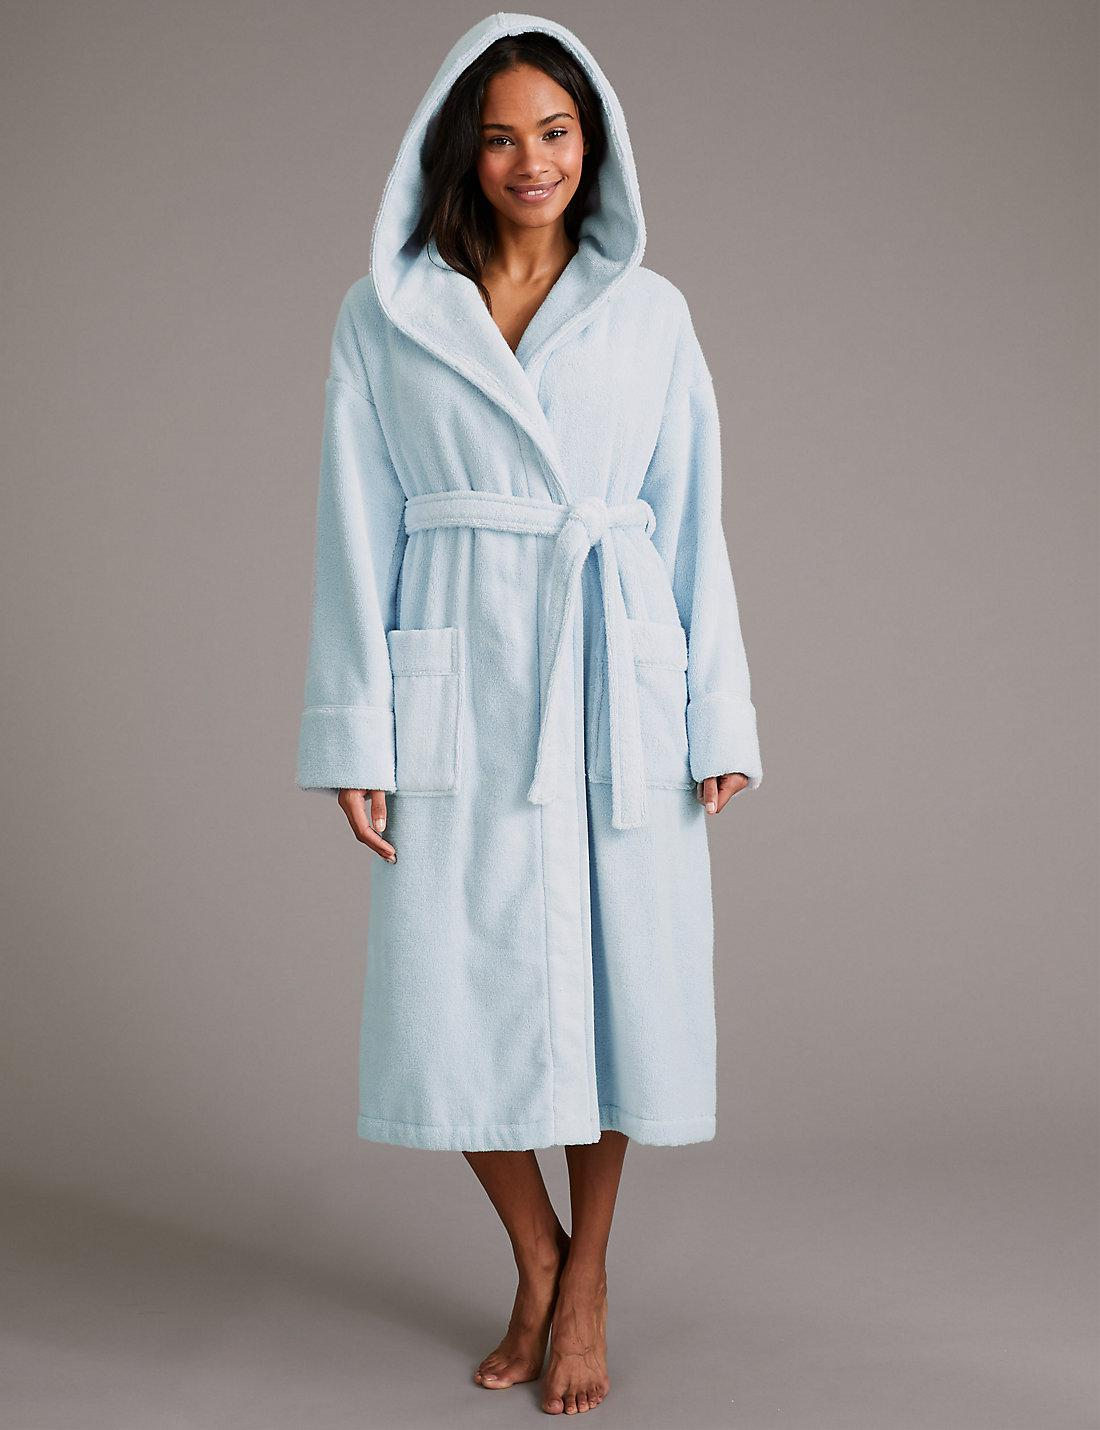 Lyst - Marks   Spencer Pure Cotton Towelling Dressing Gown in Blue ef6601026